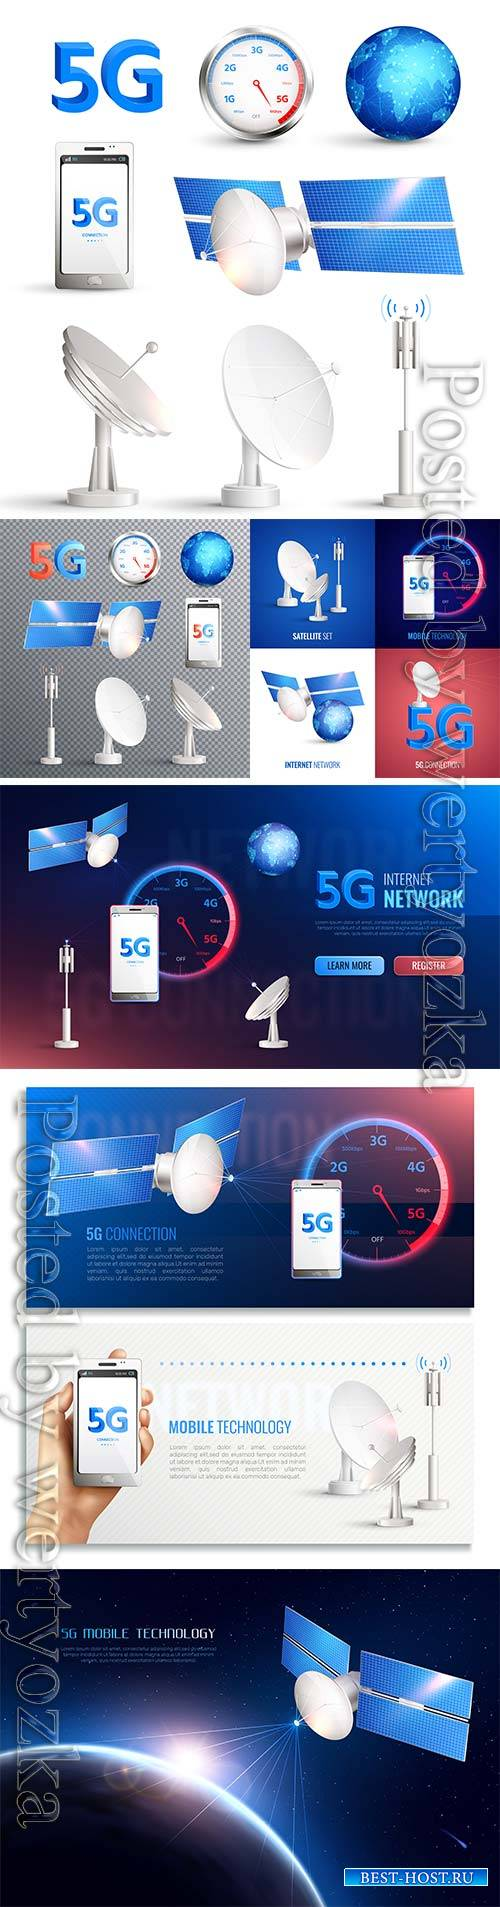 Mobile technology vector icons, broadband internet connection of 5g standard